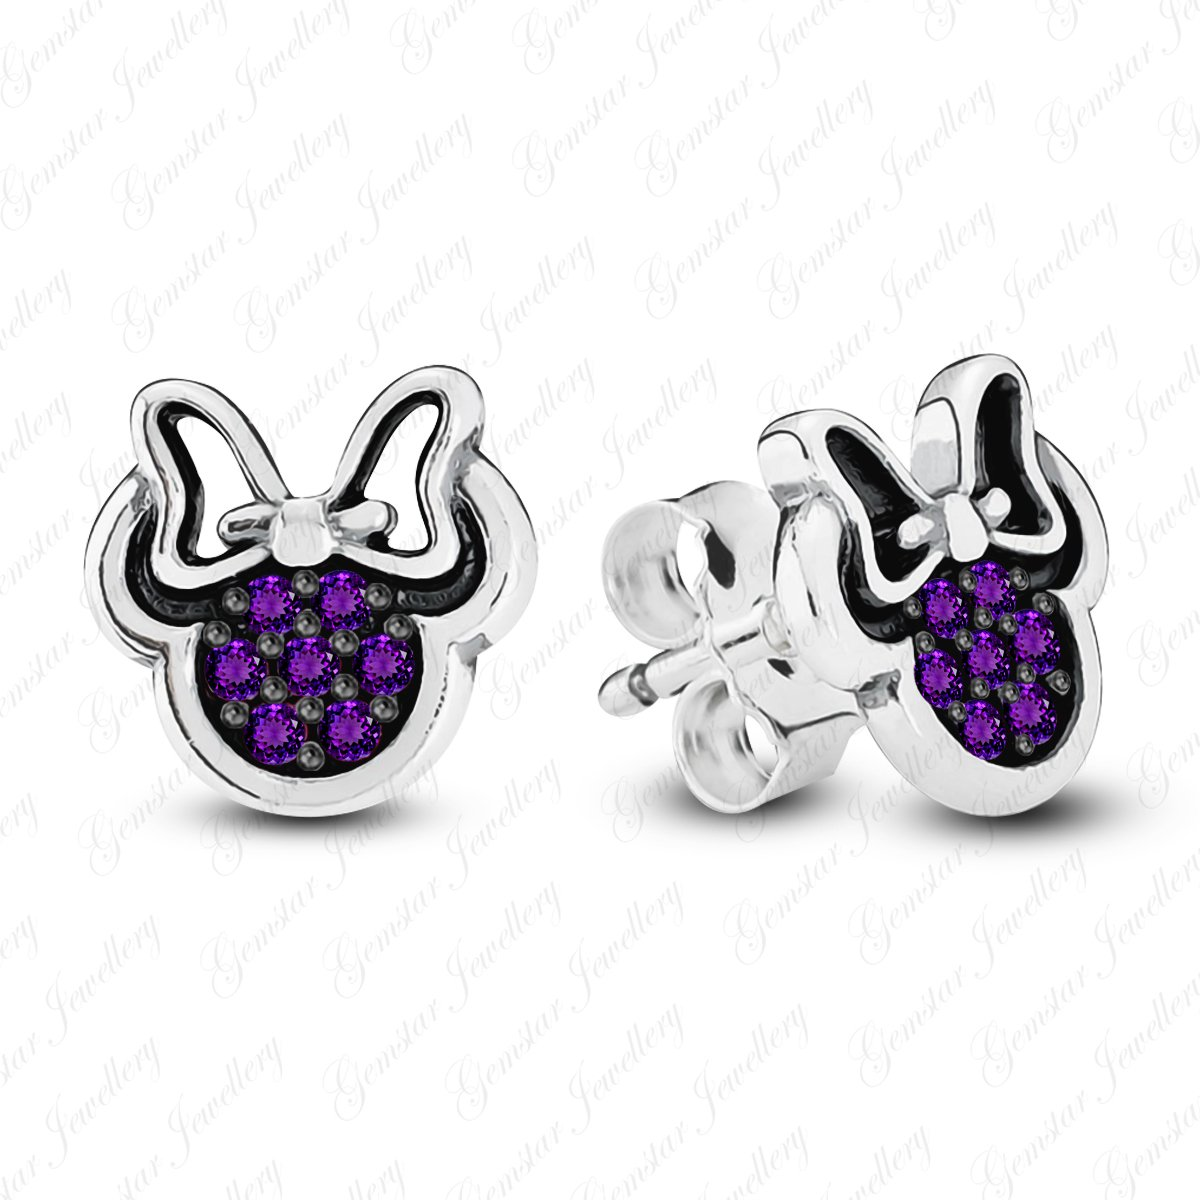 Gemstar Jewellery White /& Black Gold Plated Round Shape Amethyst Minnie Mouse Disney Stud Earrings GEW/_0008/_AME